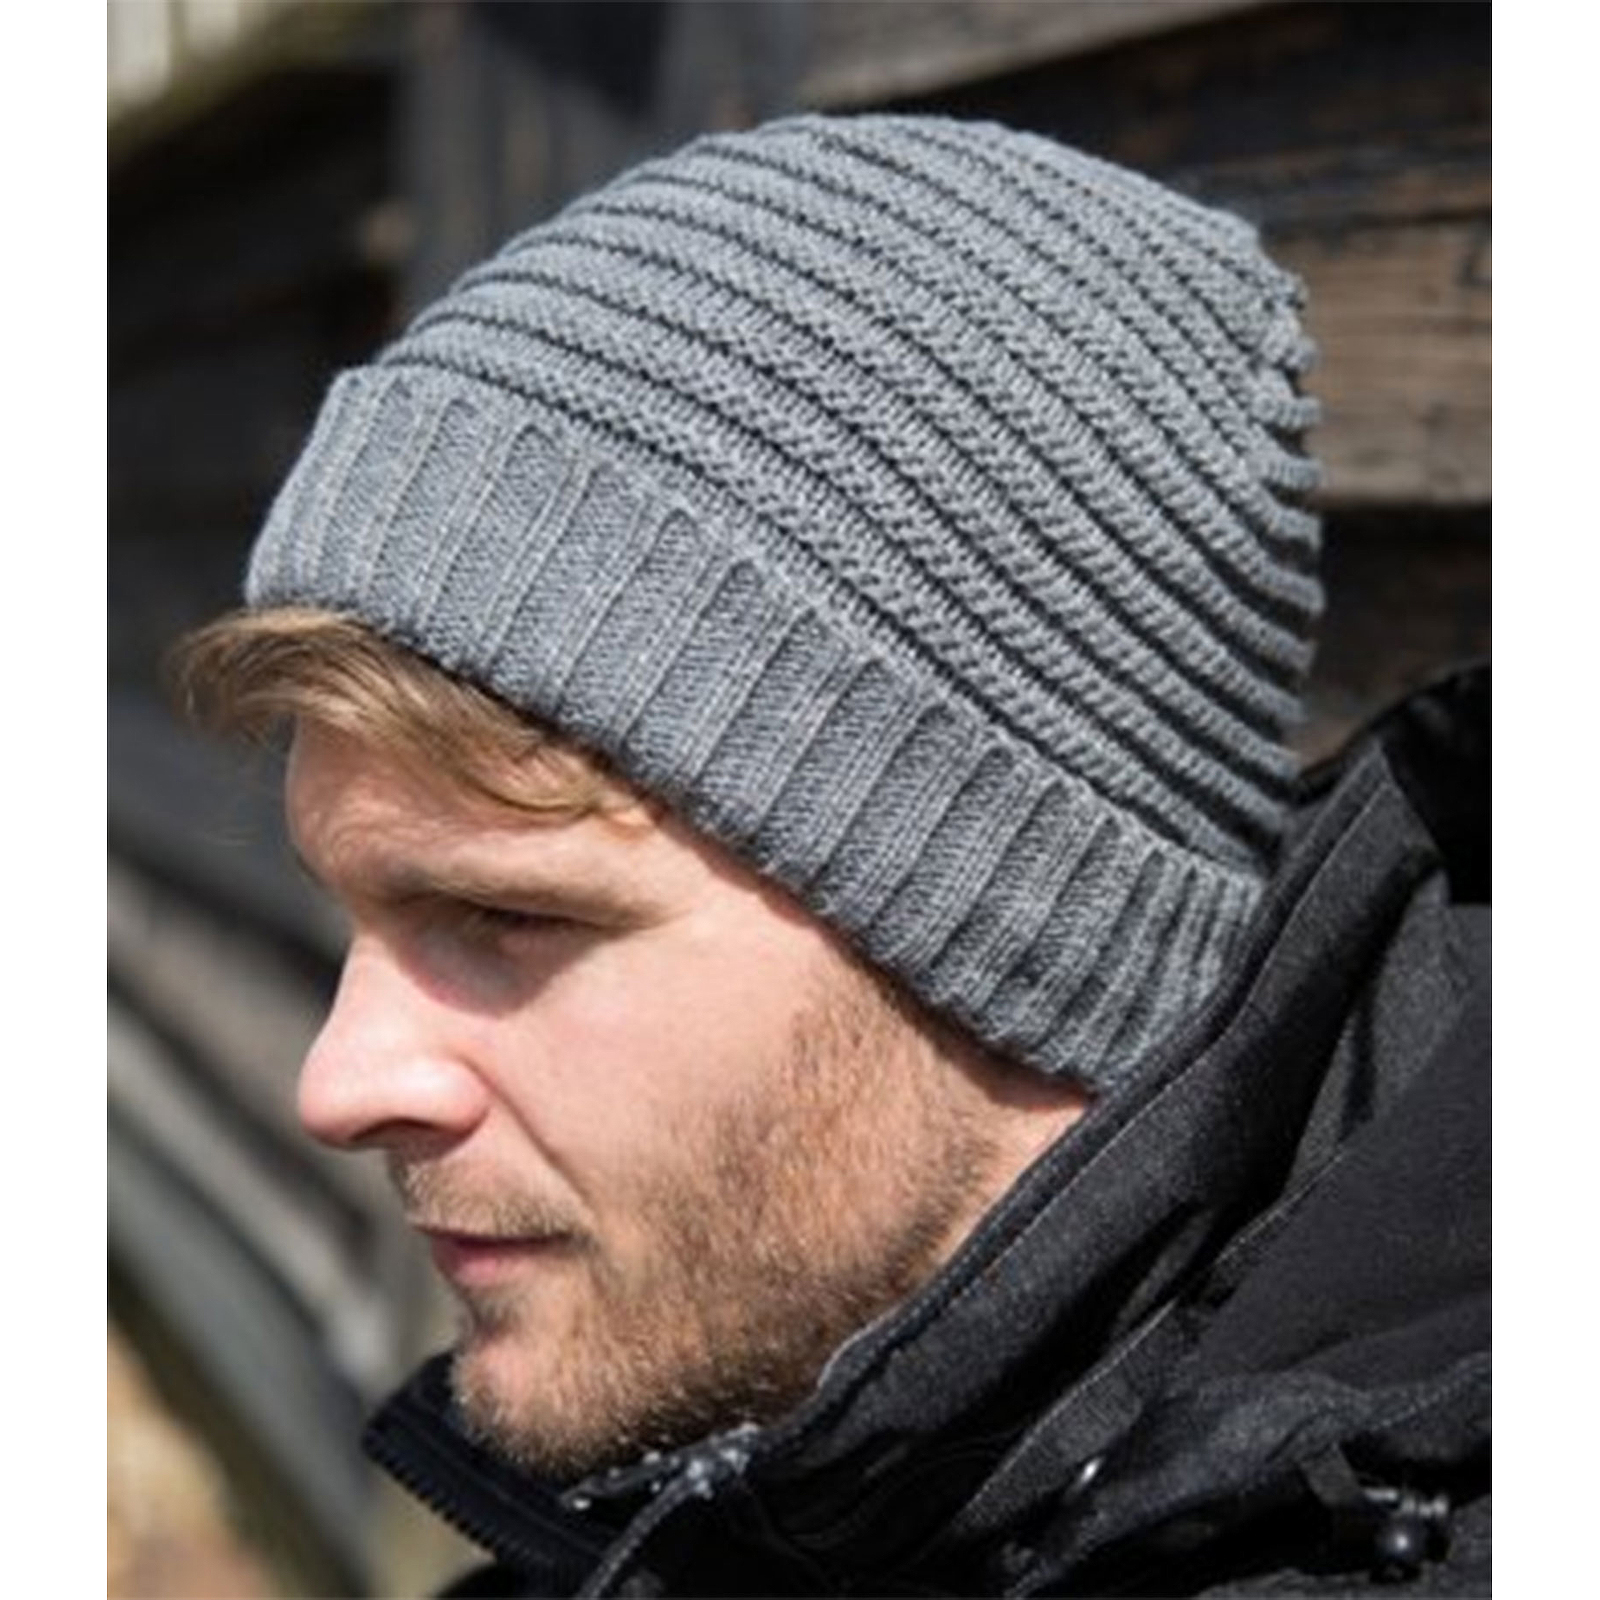 cf6f3ab2 Sentinel Thumbnail 1. Sentinel Result Braided Fleece Lined Hat Unisex  Winters Essentials Stylish Beanie Cap